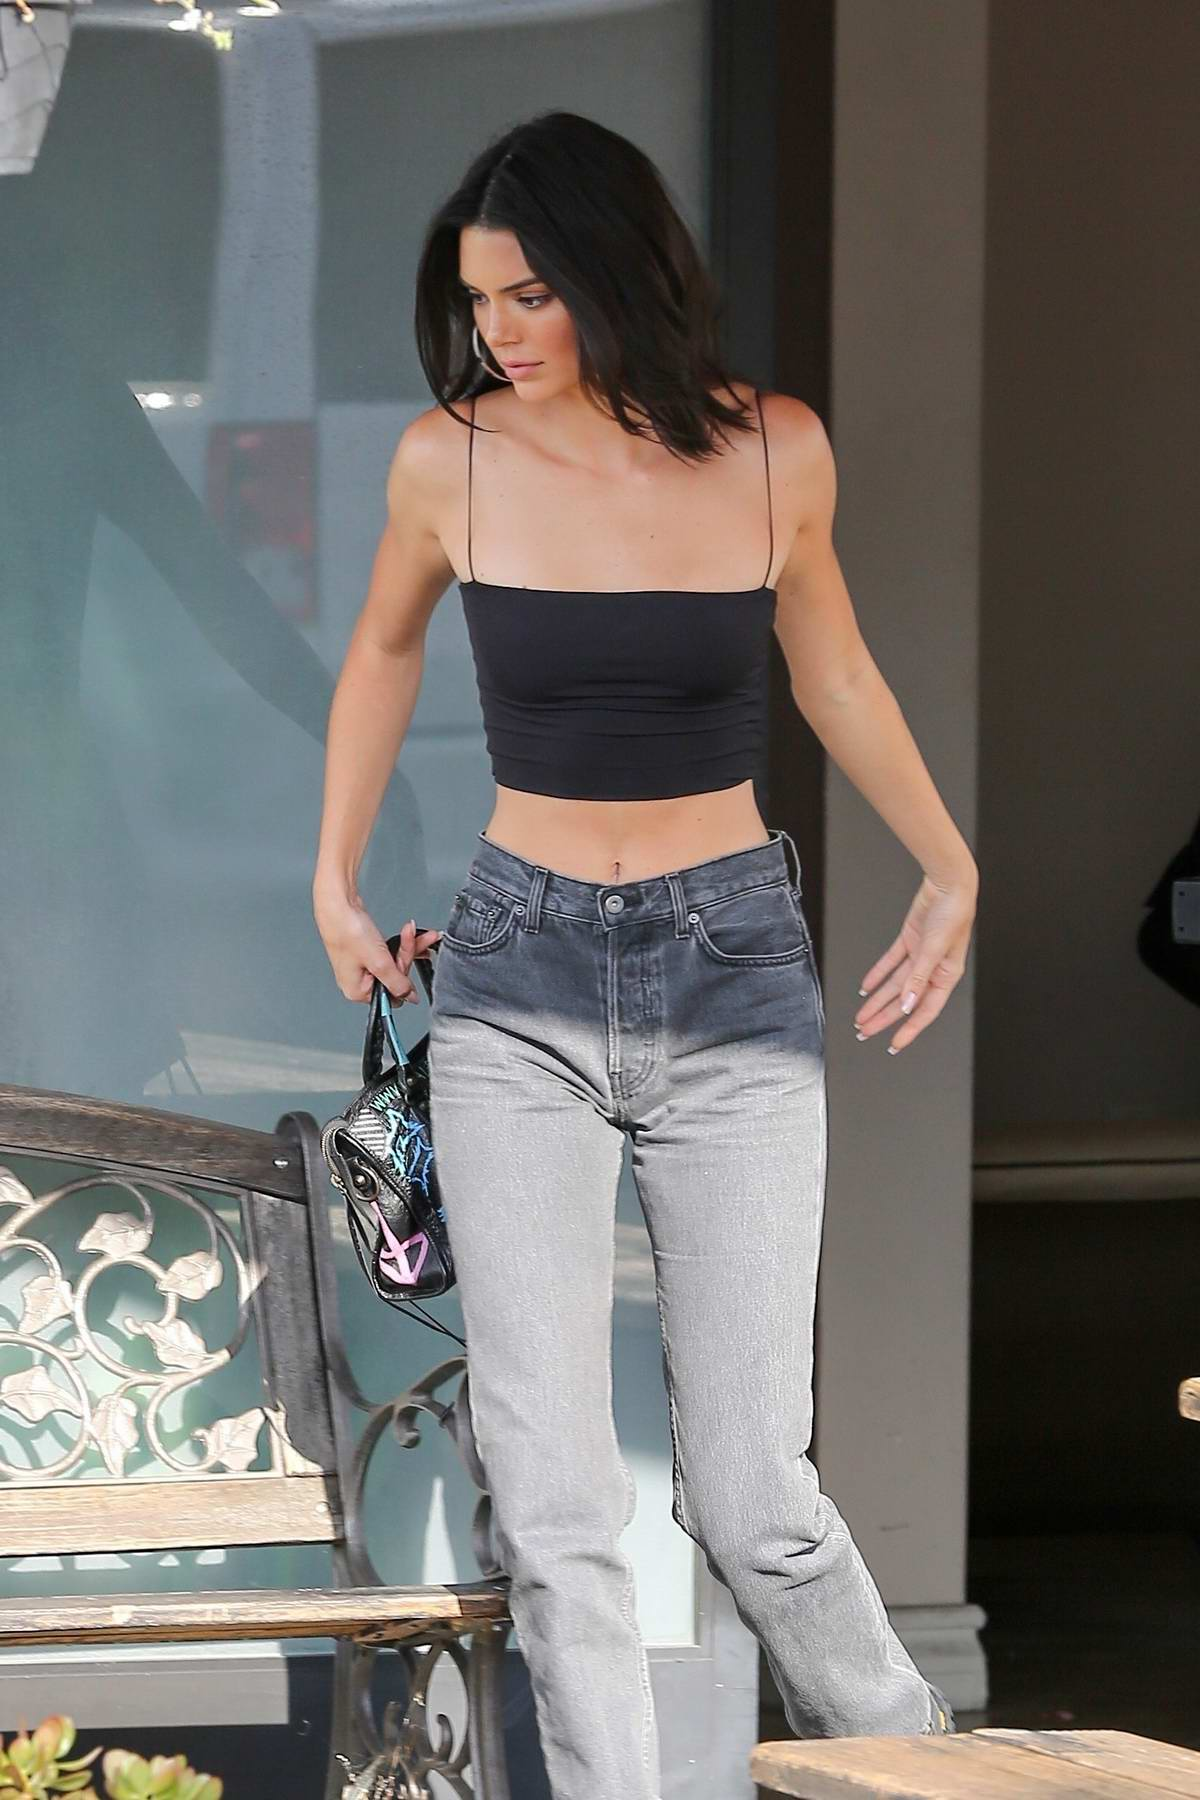 Kendall Jenner Leaves The Studio In A Black Corset Top In